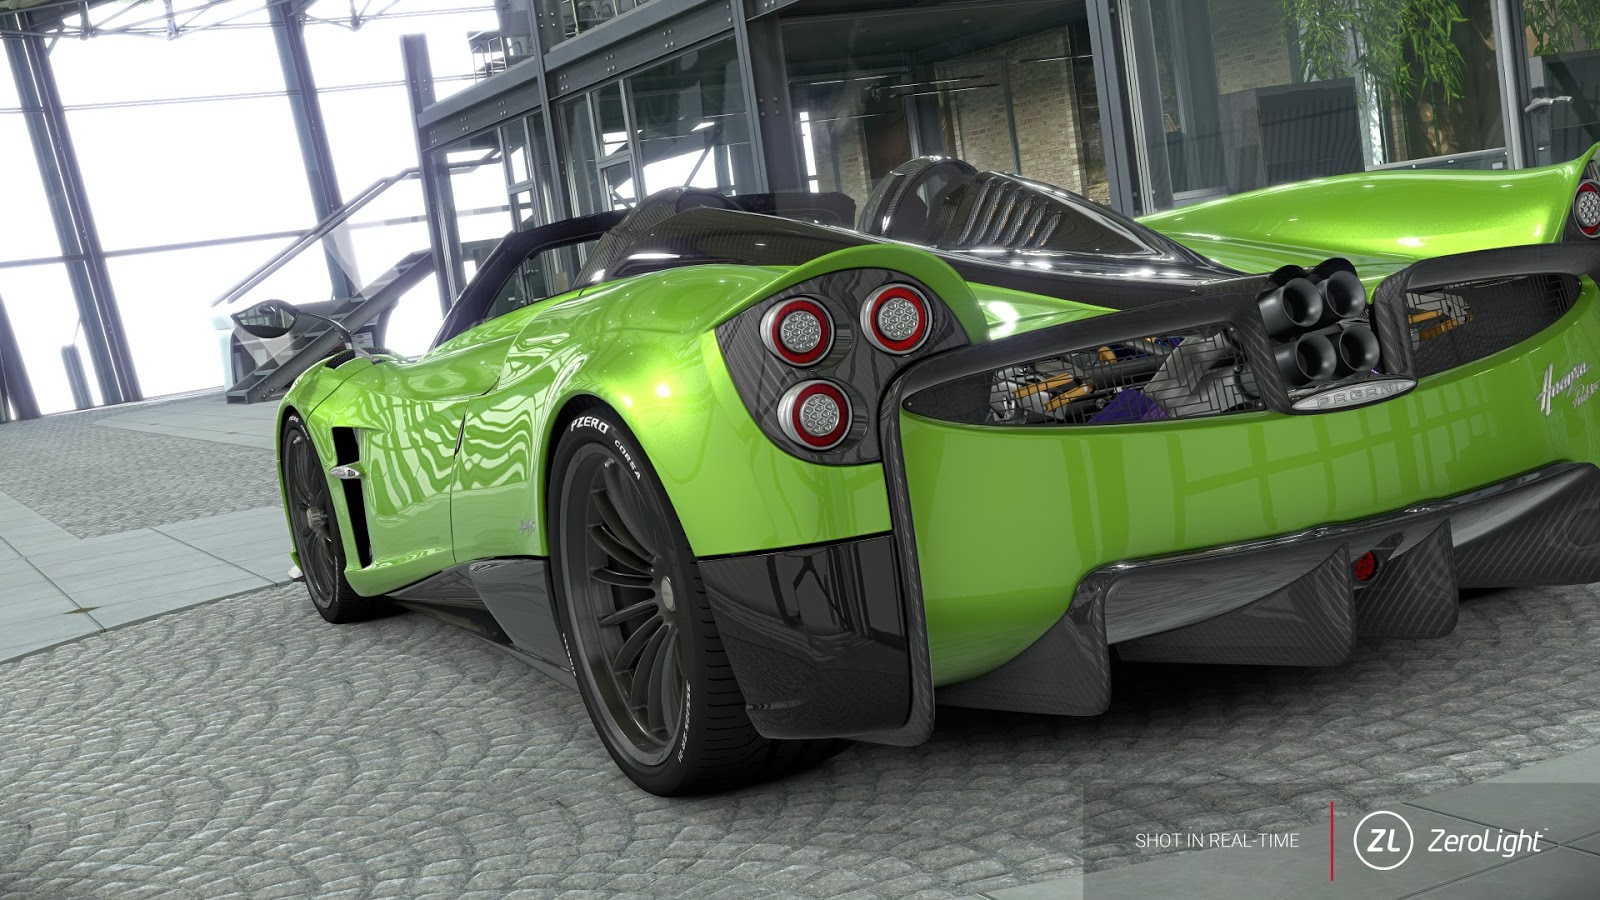 DS pagani huayra roadster : Here Is How We Would Configure Our Pagani Huayra Roadster